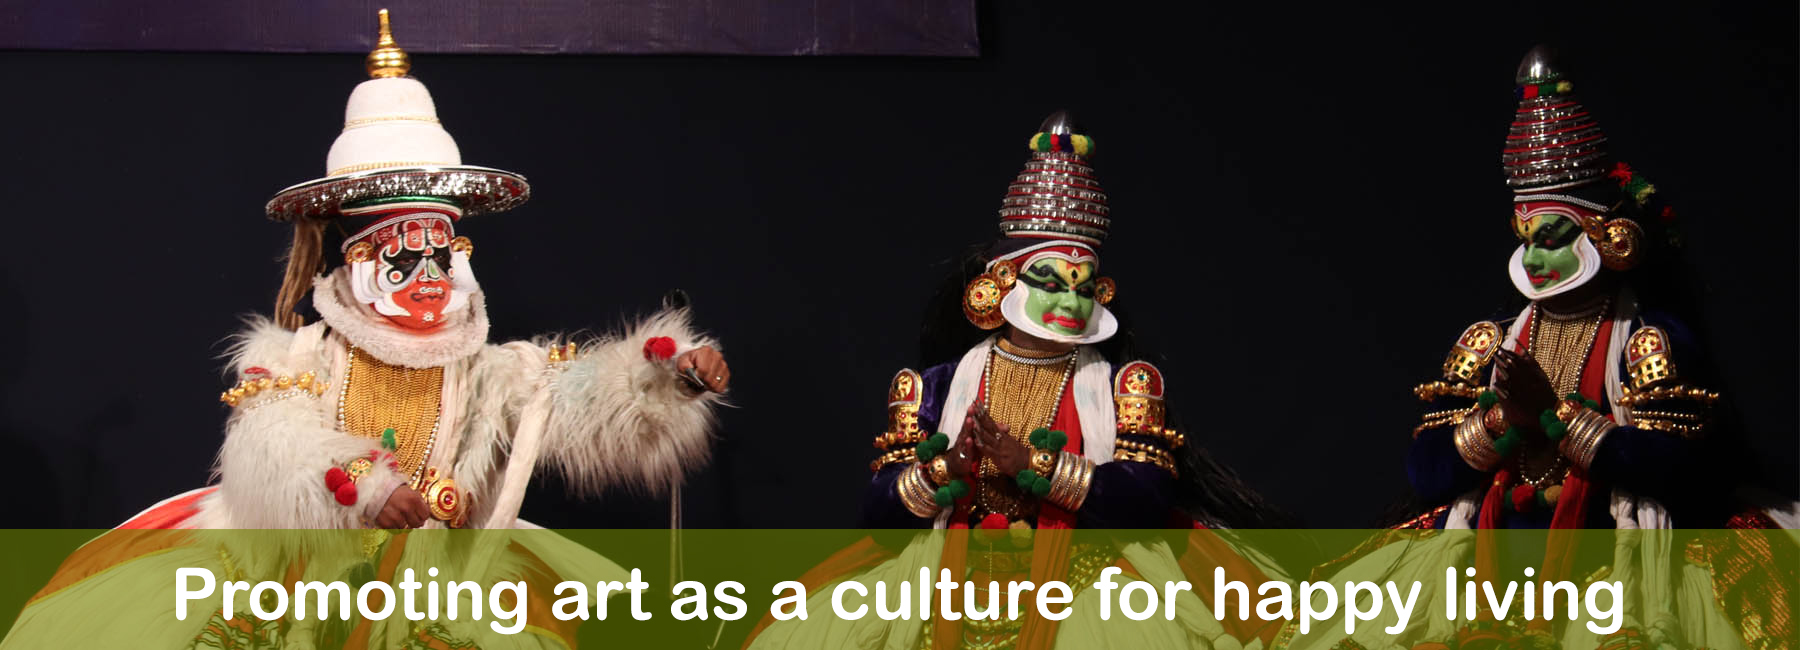 Promoting art as a culture for happy living